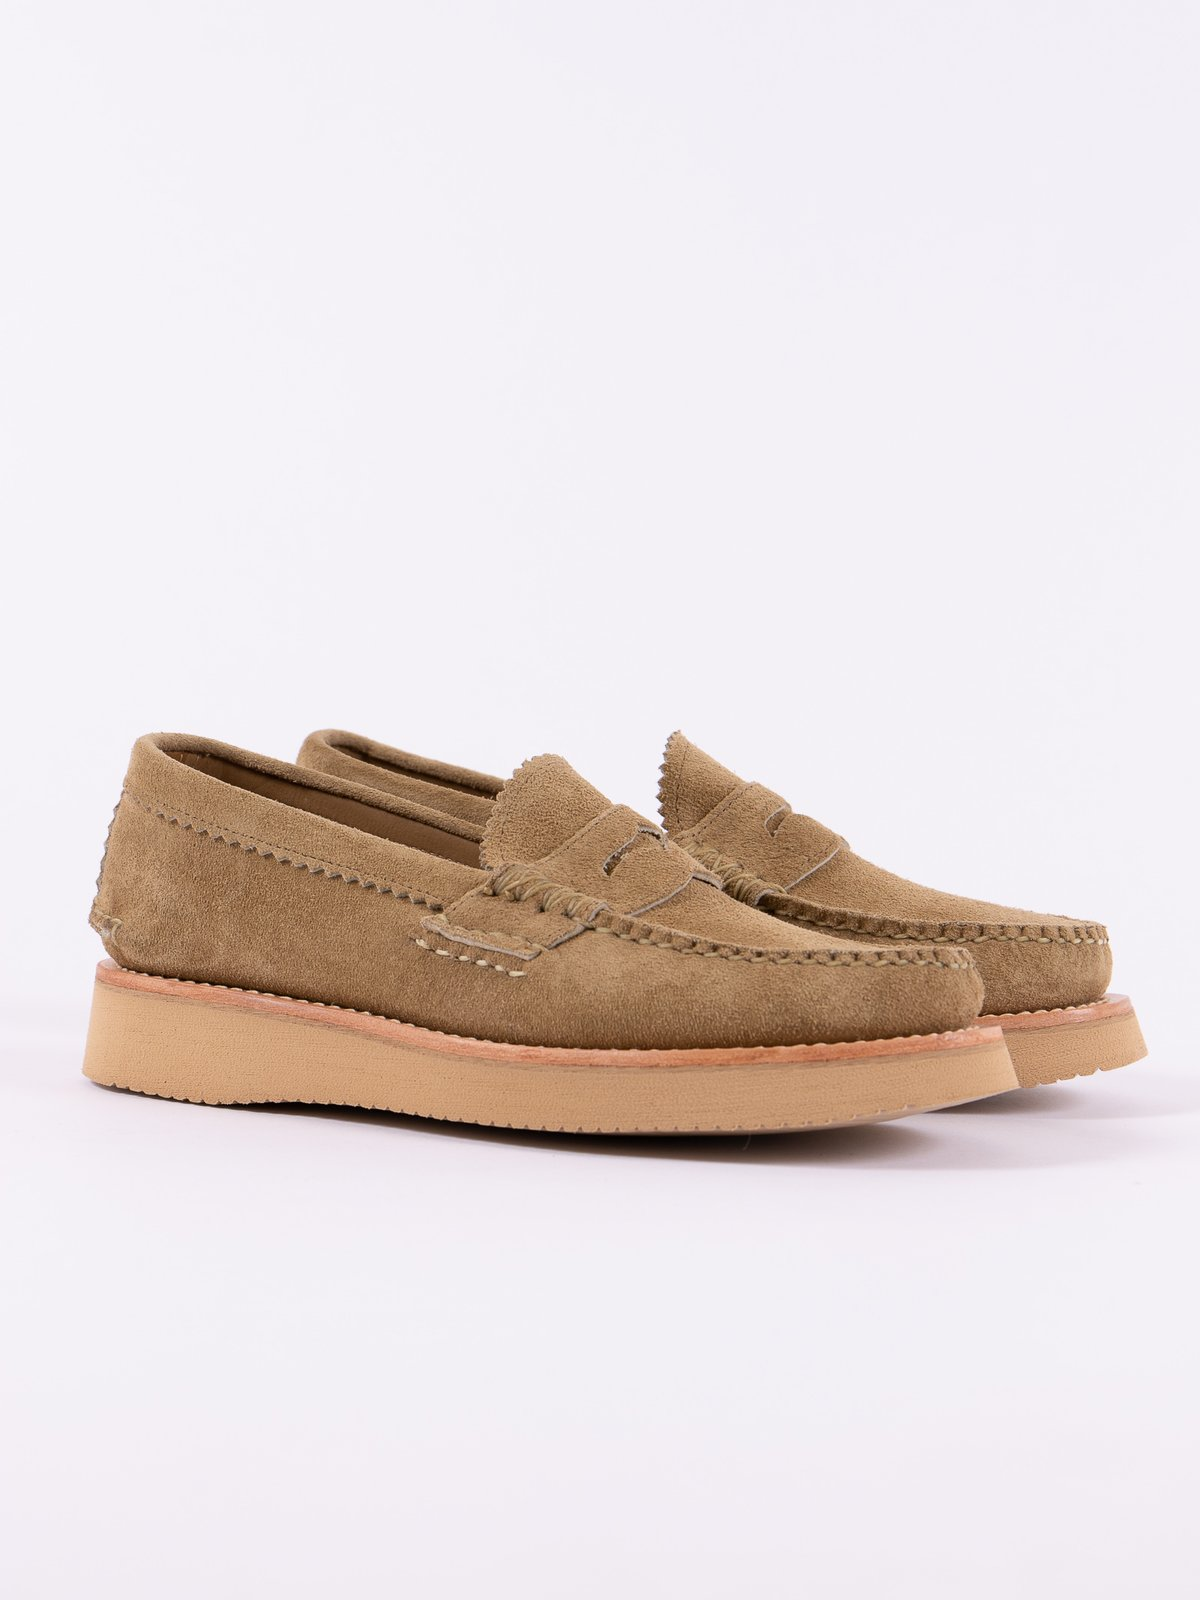 FO Khaki Loafer Shoe Exclusive - Image 1